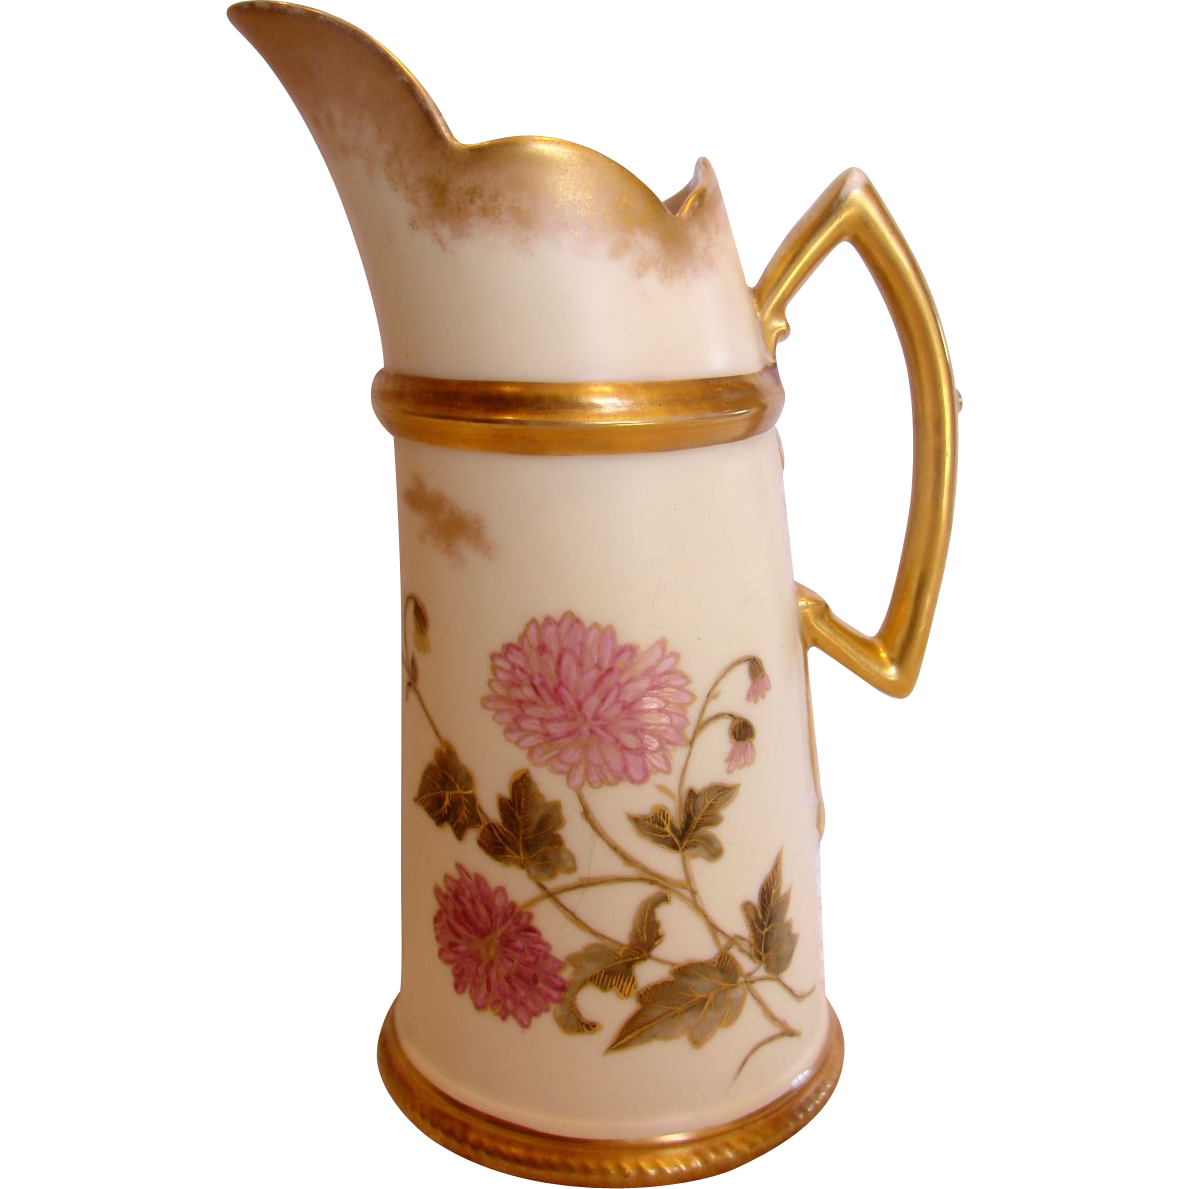 French Limoges Tankard Jug Pitcher Vase Hand Painted Pink Chrysanthemums Artist Signed 1889